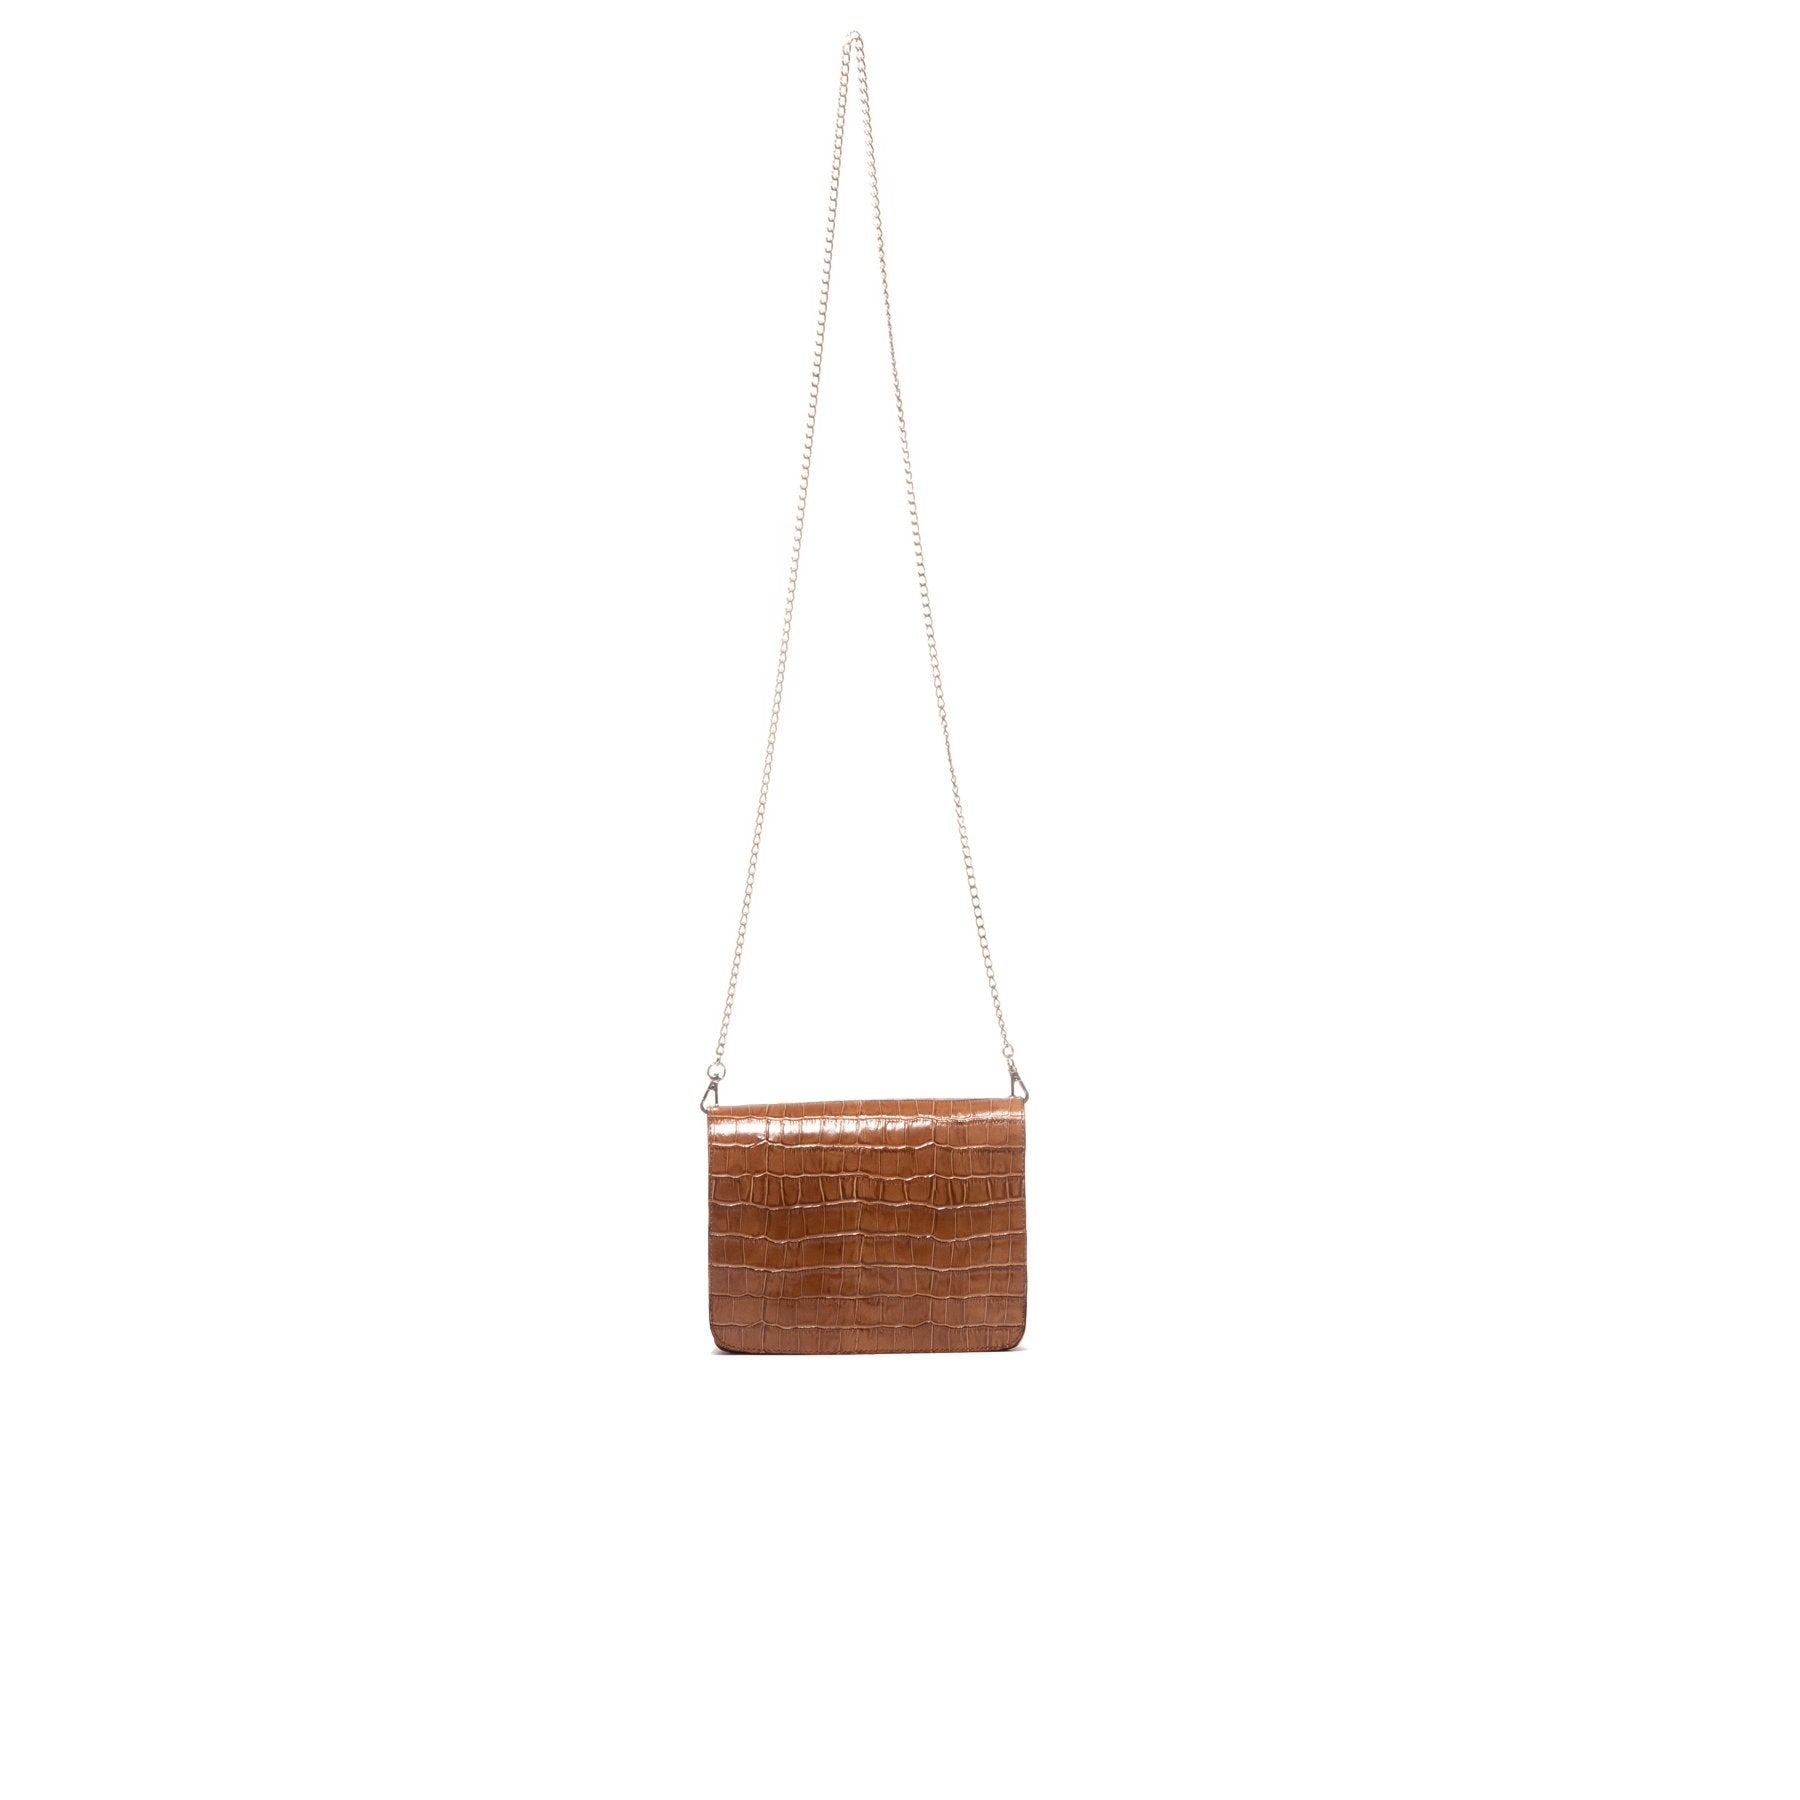 Matine Tan Croco Mini Bag